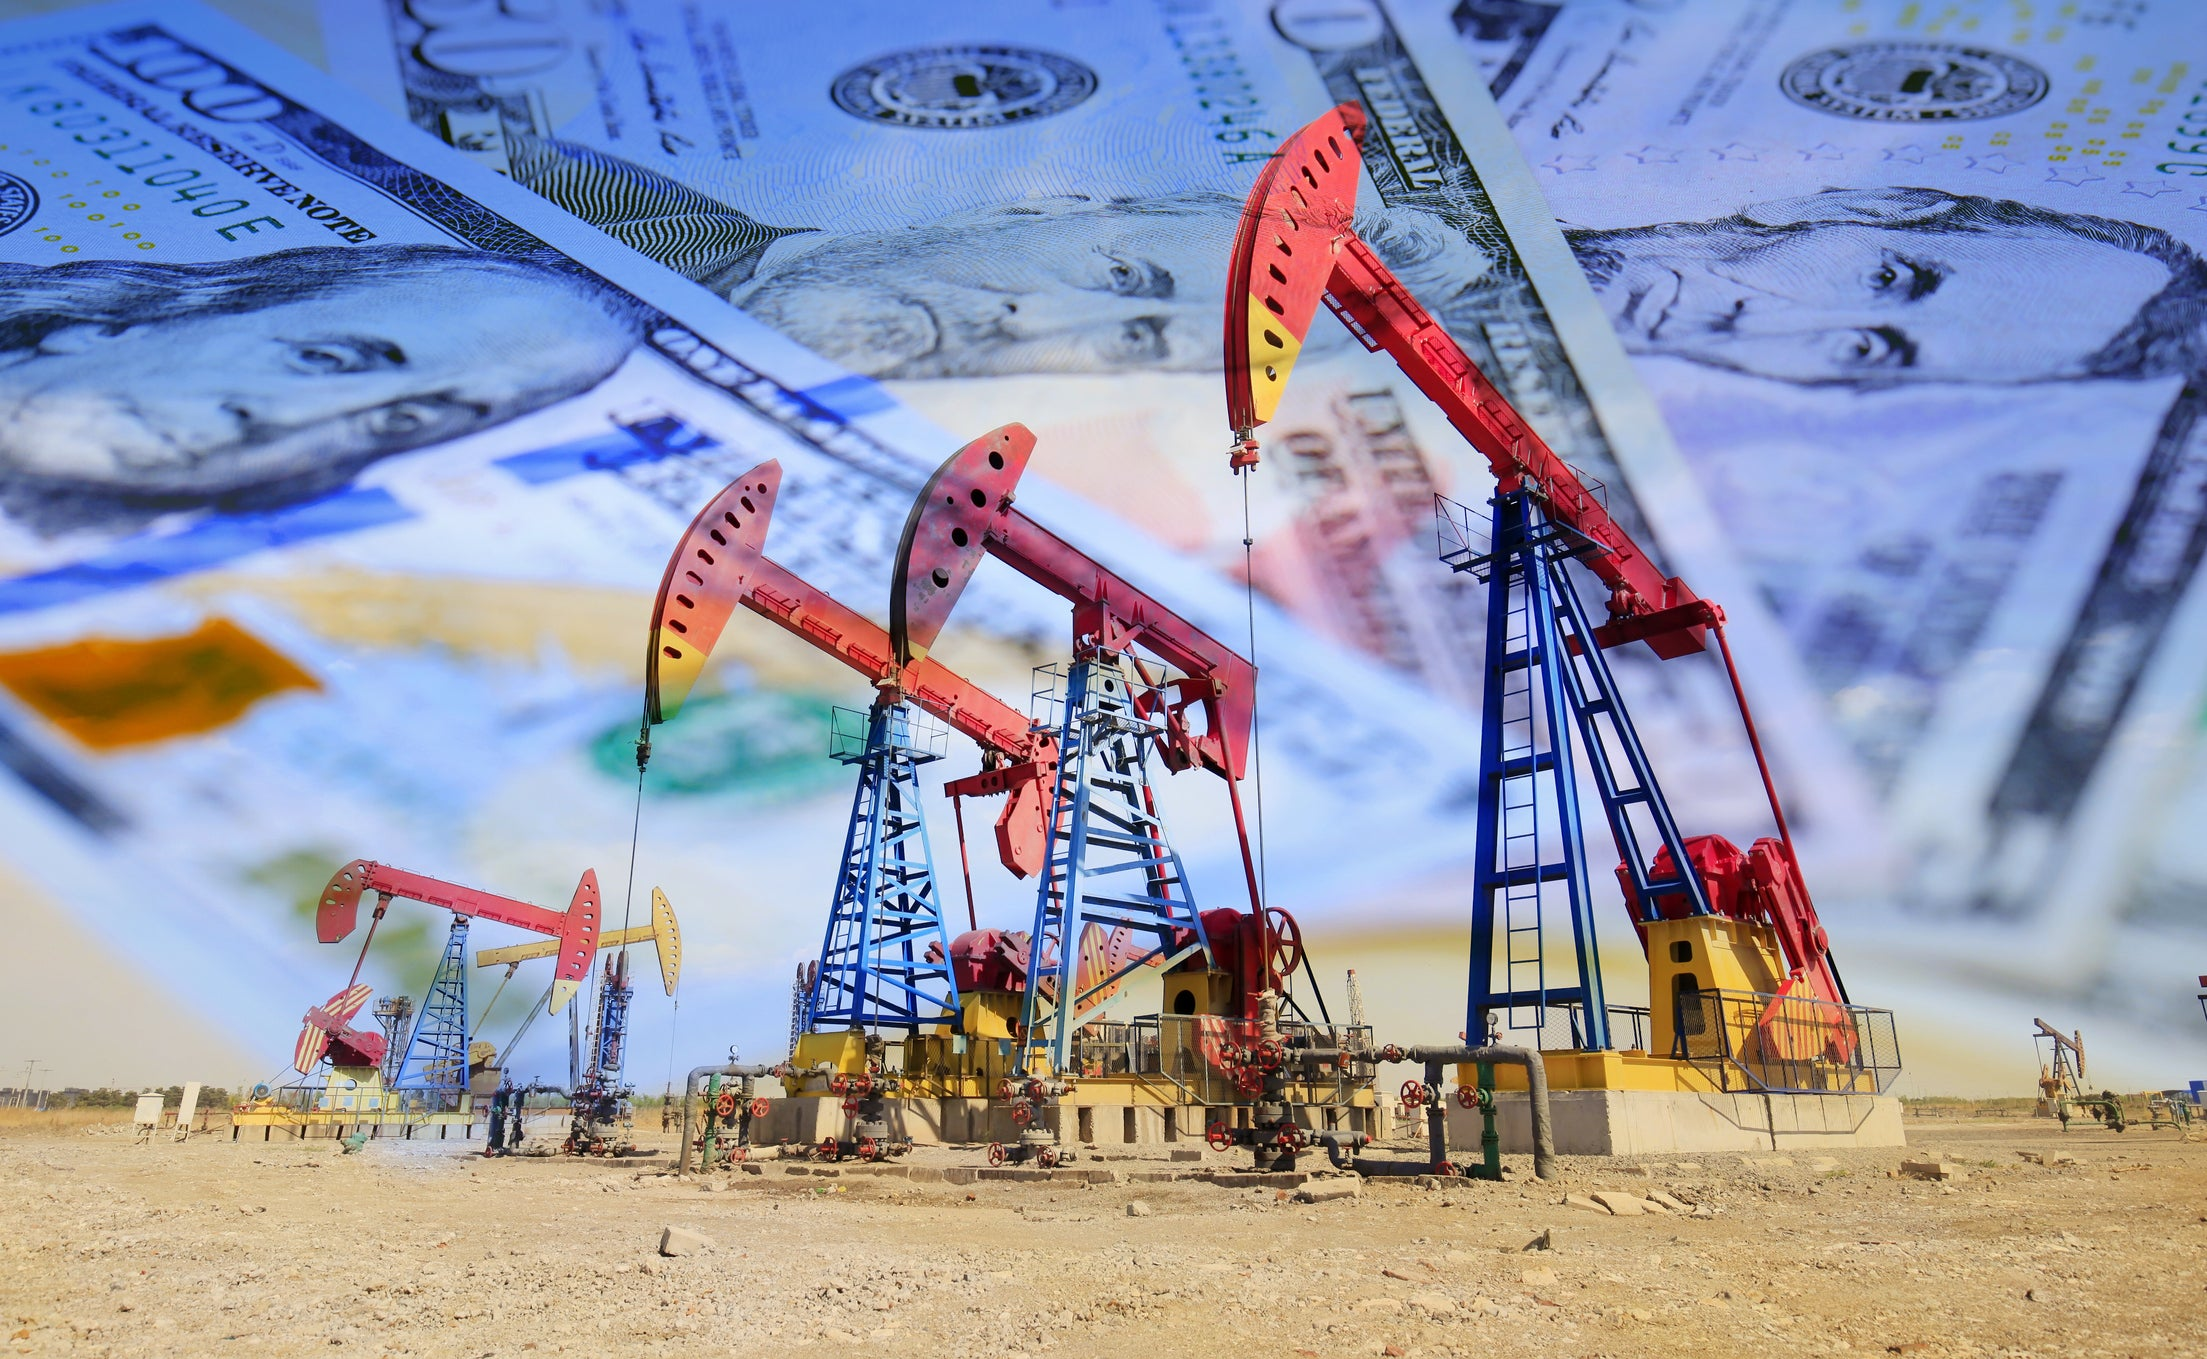 Oil pumps with cash in the background.